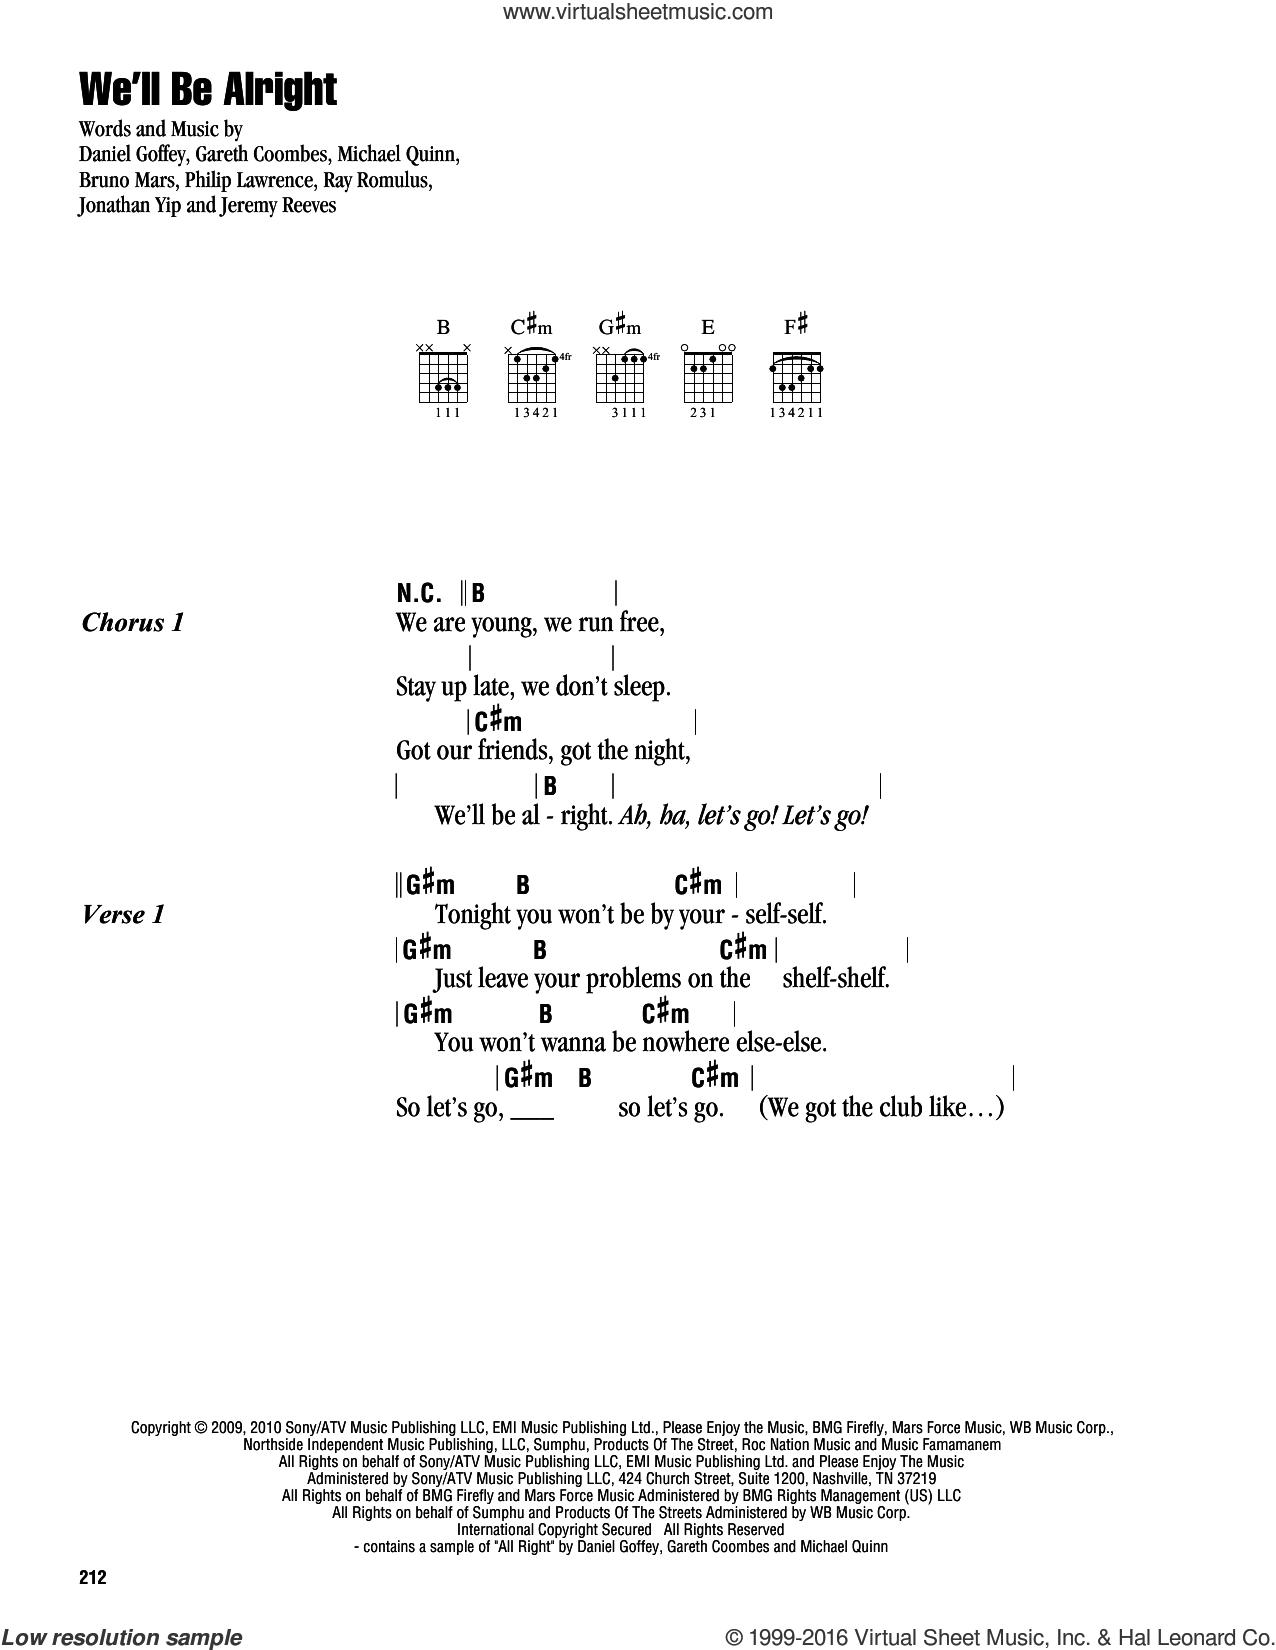 We'll Be Alright sheet music for guitar (chords) by Ray Romulus, Travie McCoy, Bruno Mars, Daniel Goffey, Gareth Coombes, Jeremy Reeves, Jonathan Yip, Michael Quinn and Philip Lawrence. Score Image Preview.